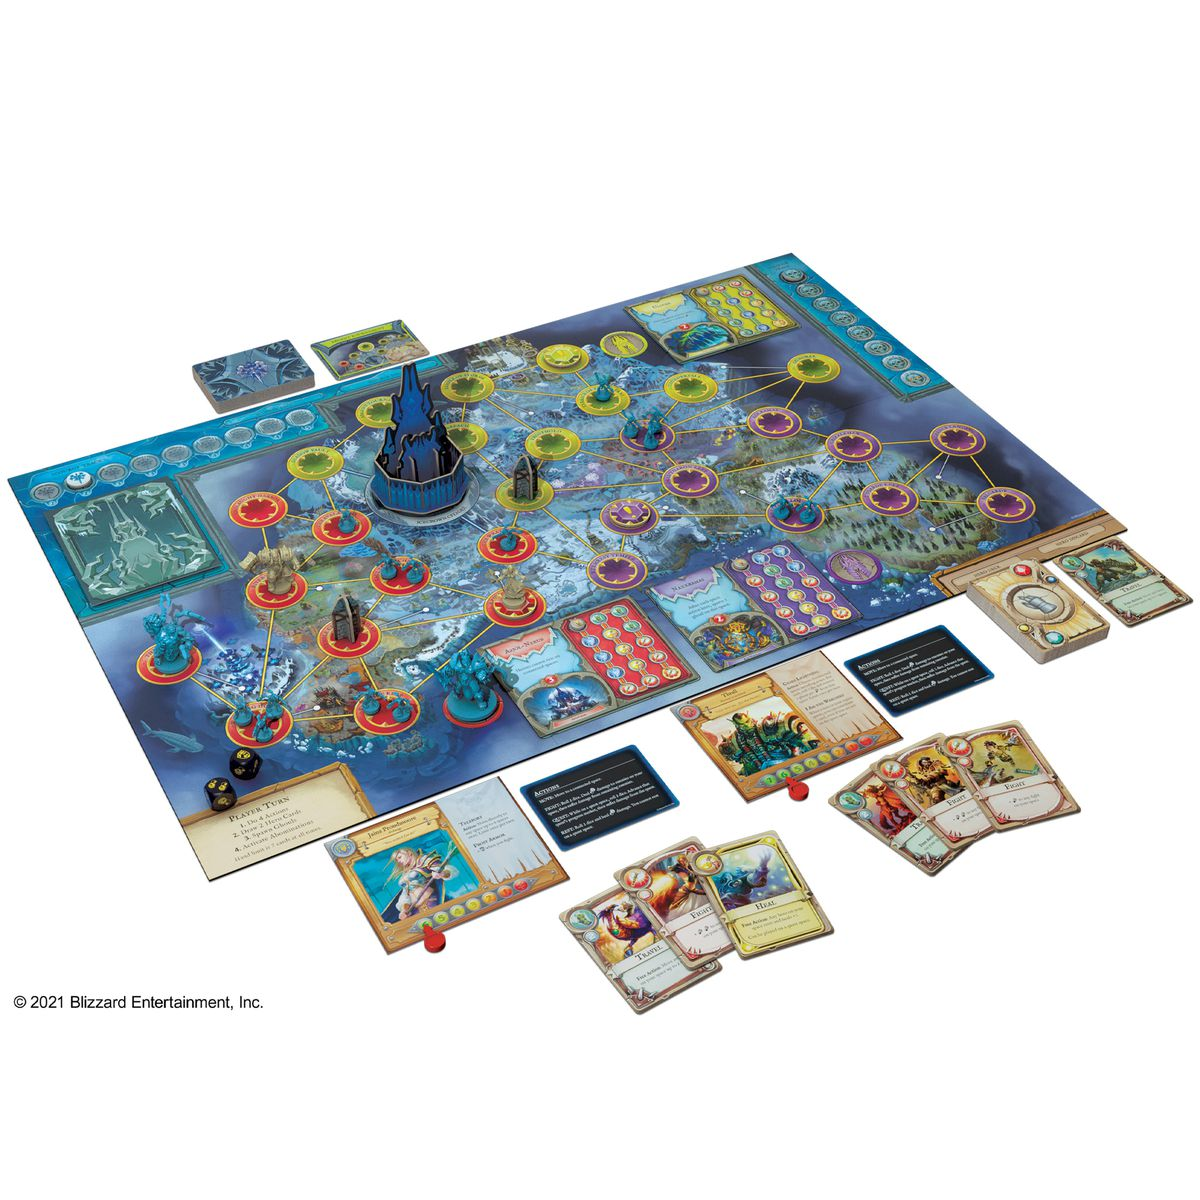 The complete Wrath of the Lich King version of Pandemic set up for play.